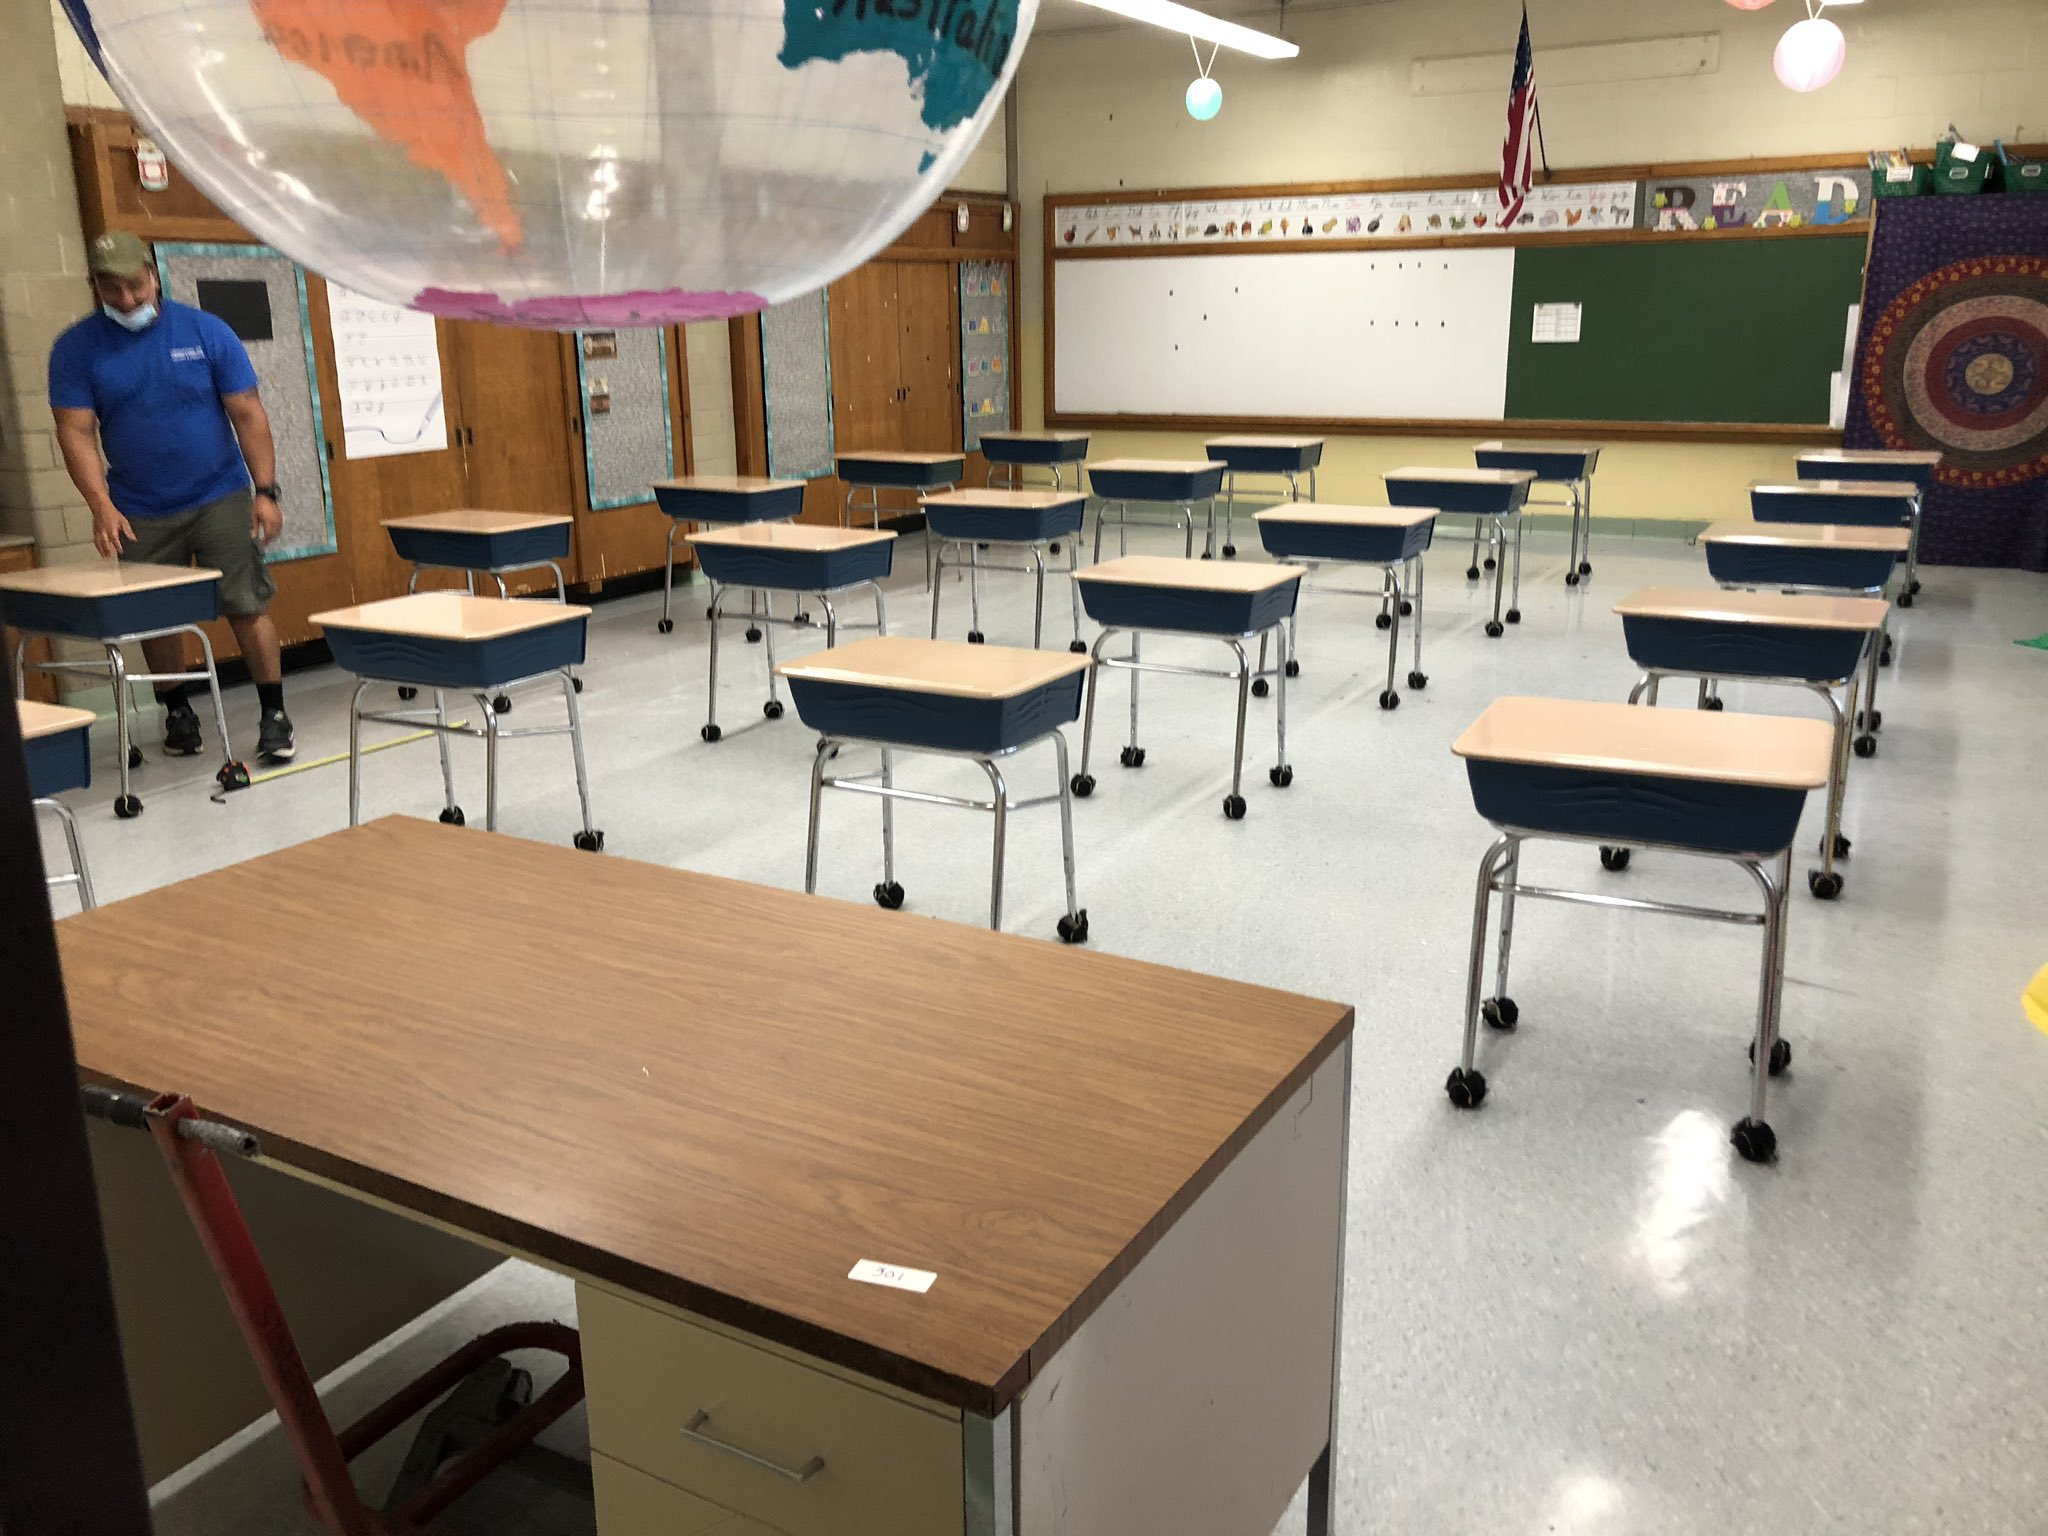 An Empty Classroom With Desks Spaced Three Feet Apart. Photo Courtesy Brenda Maurao